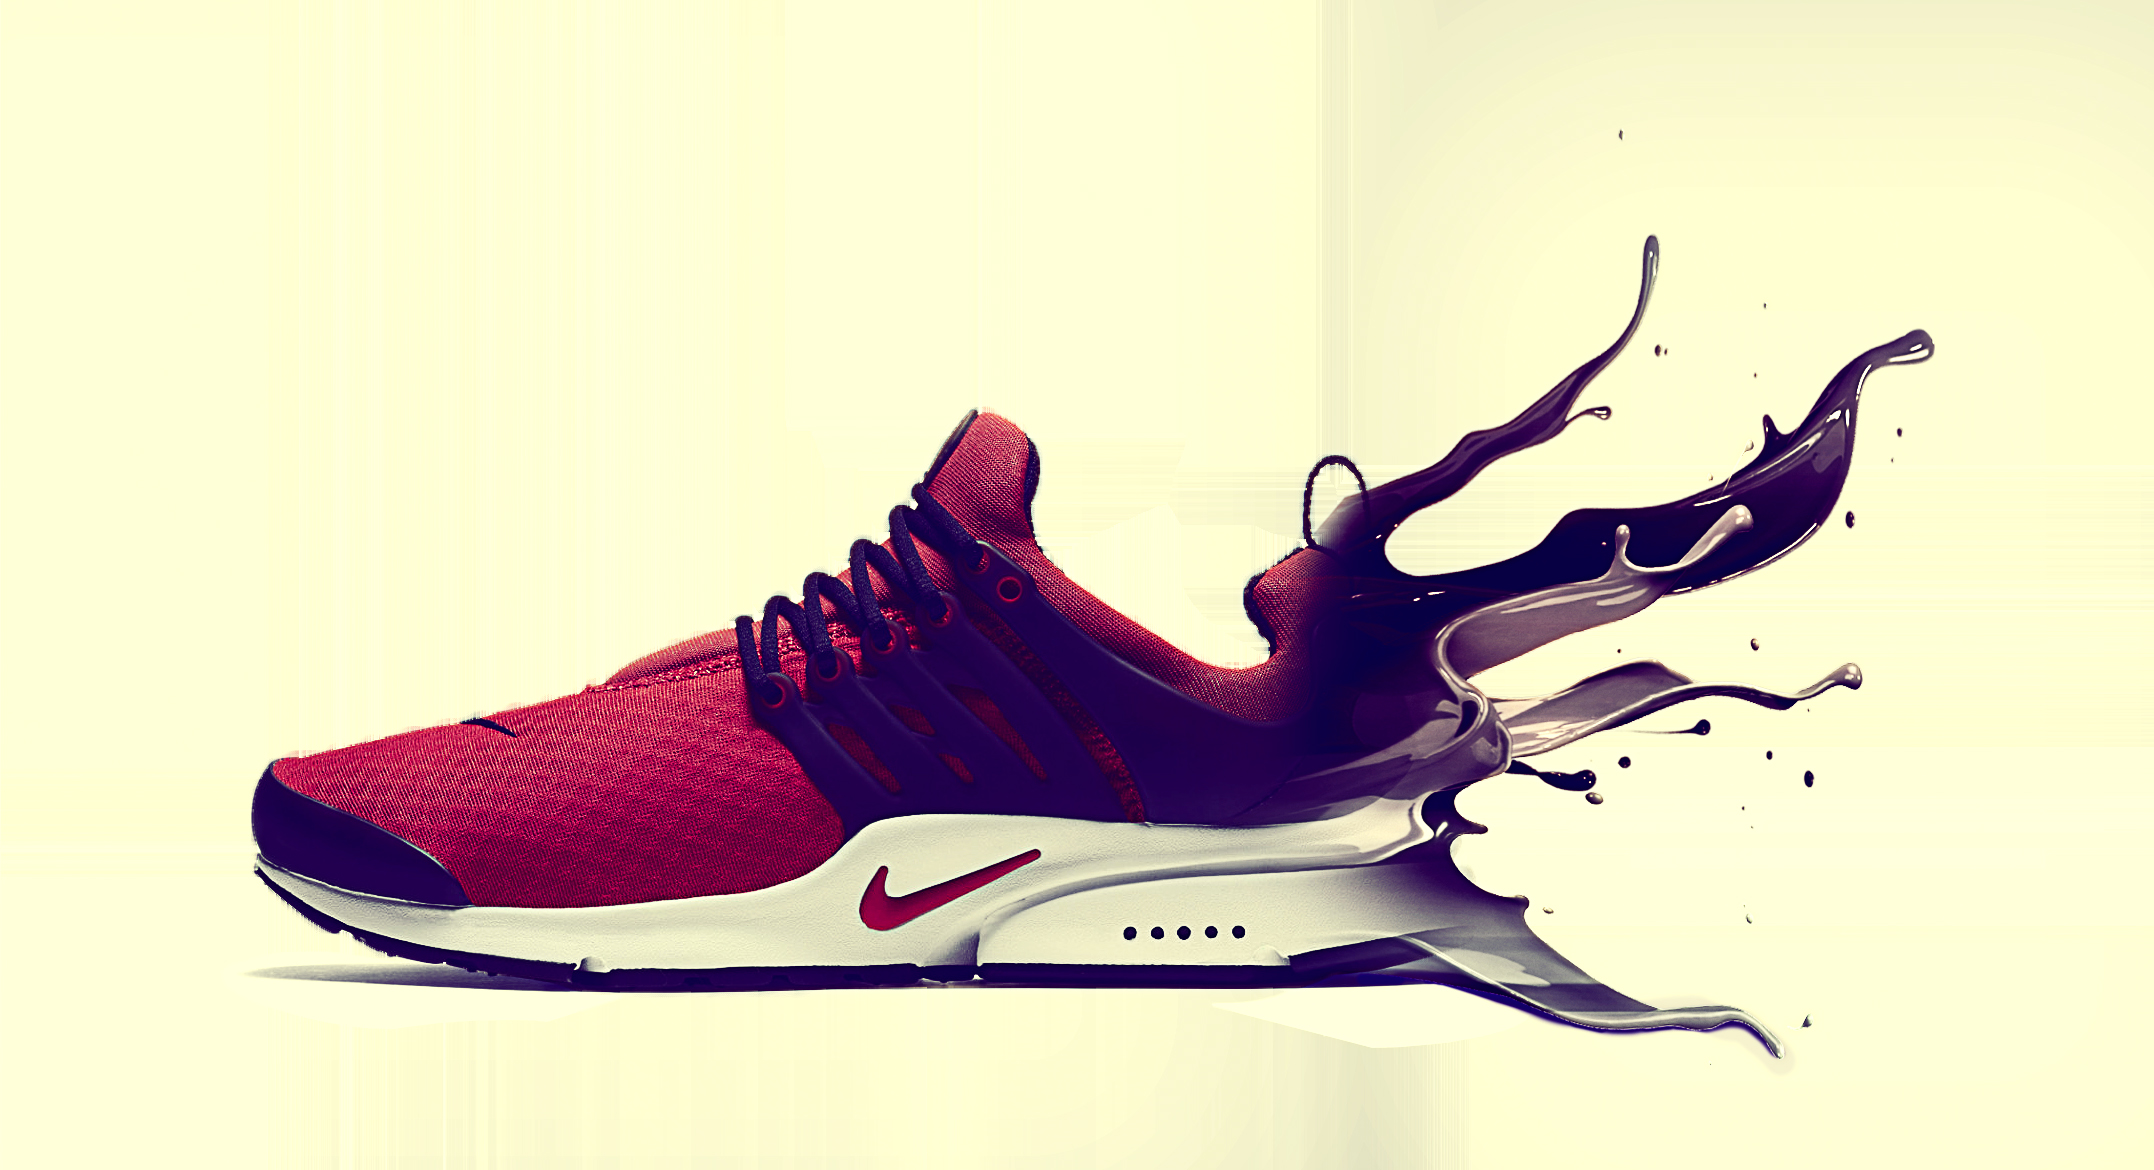 Service Sports Shoes Price In Pakistan